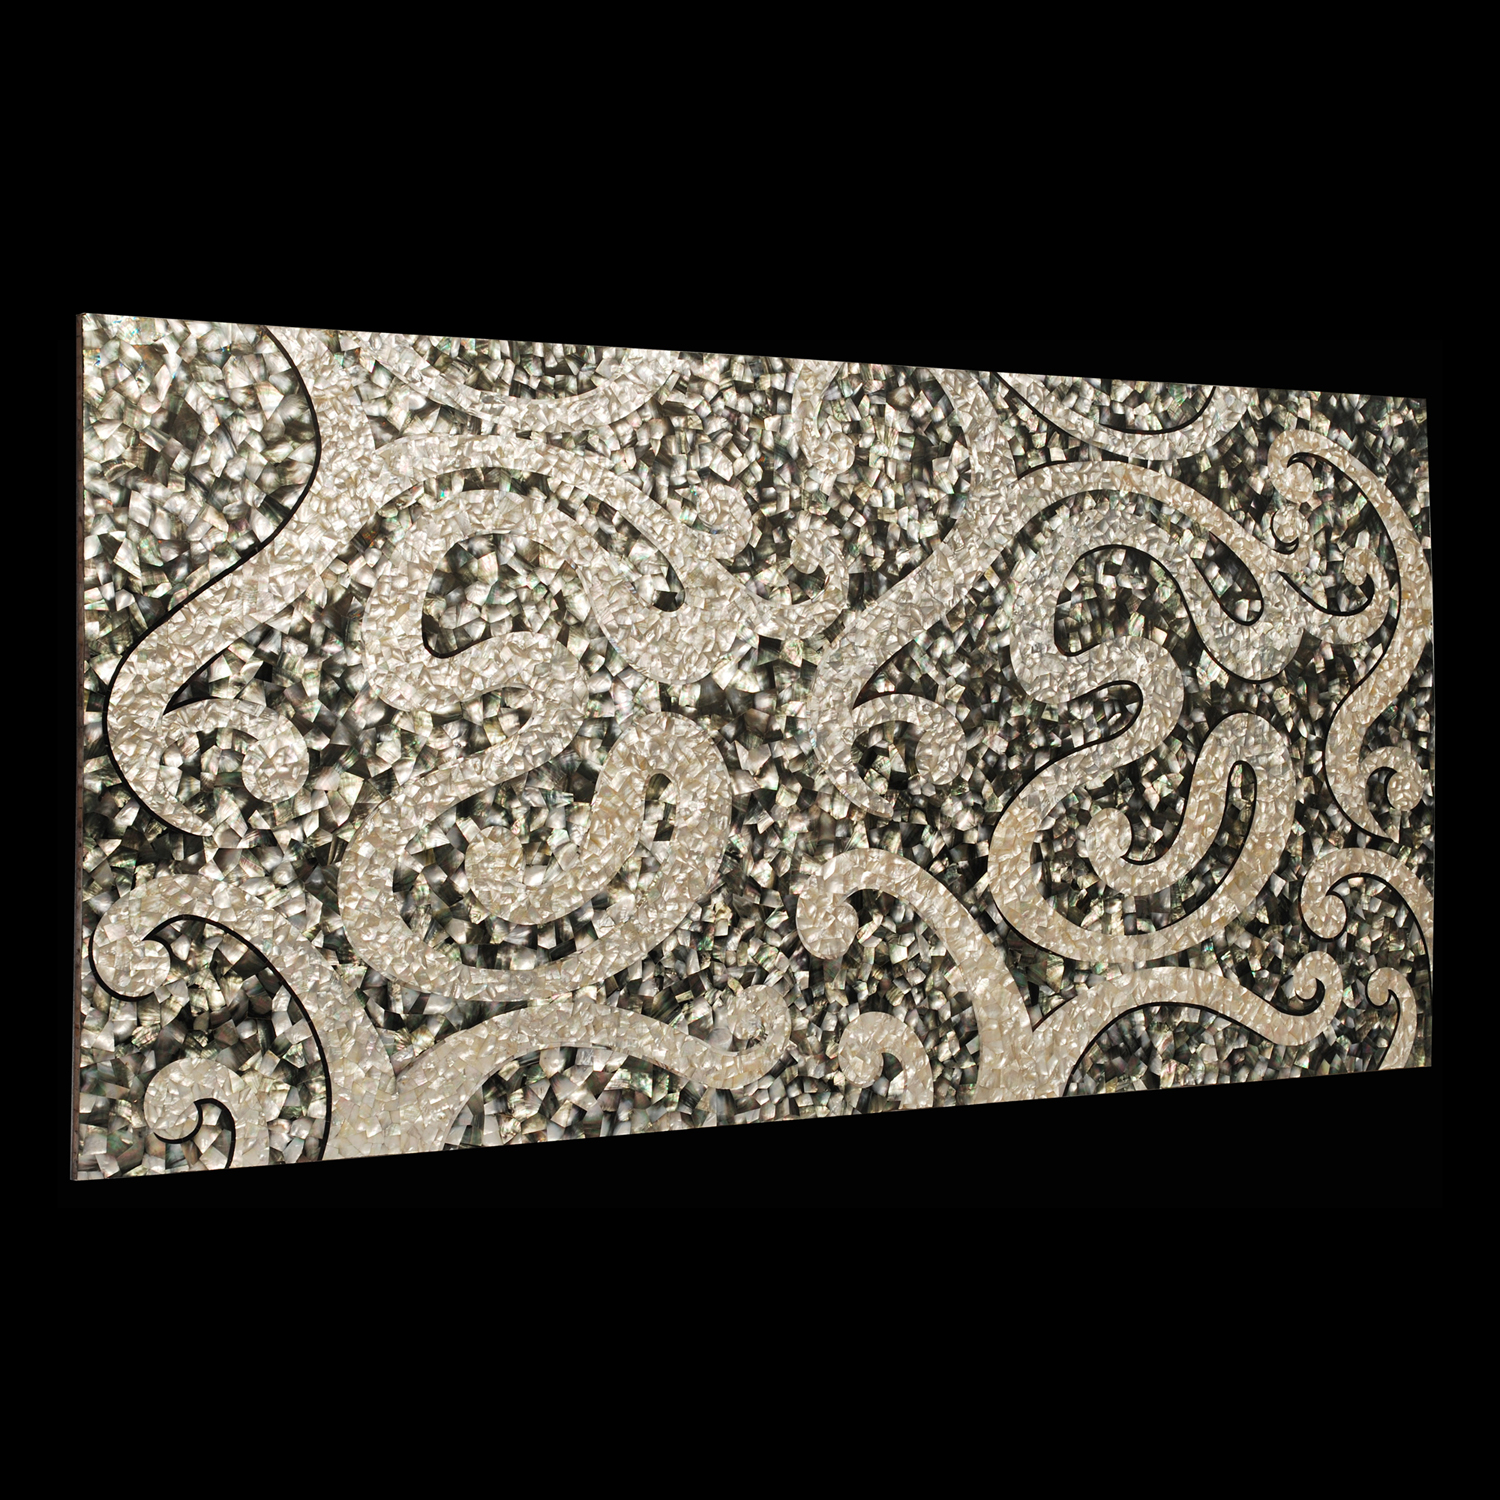 Swirl Black & White Mother of Pearl Shell Overlay Panel 4x8', 1 piece